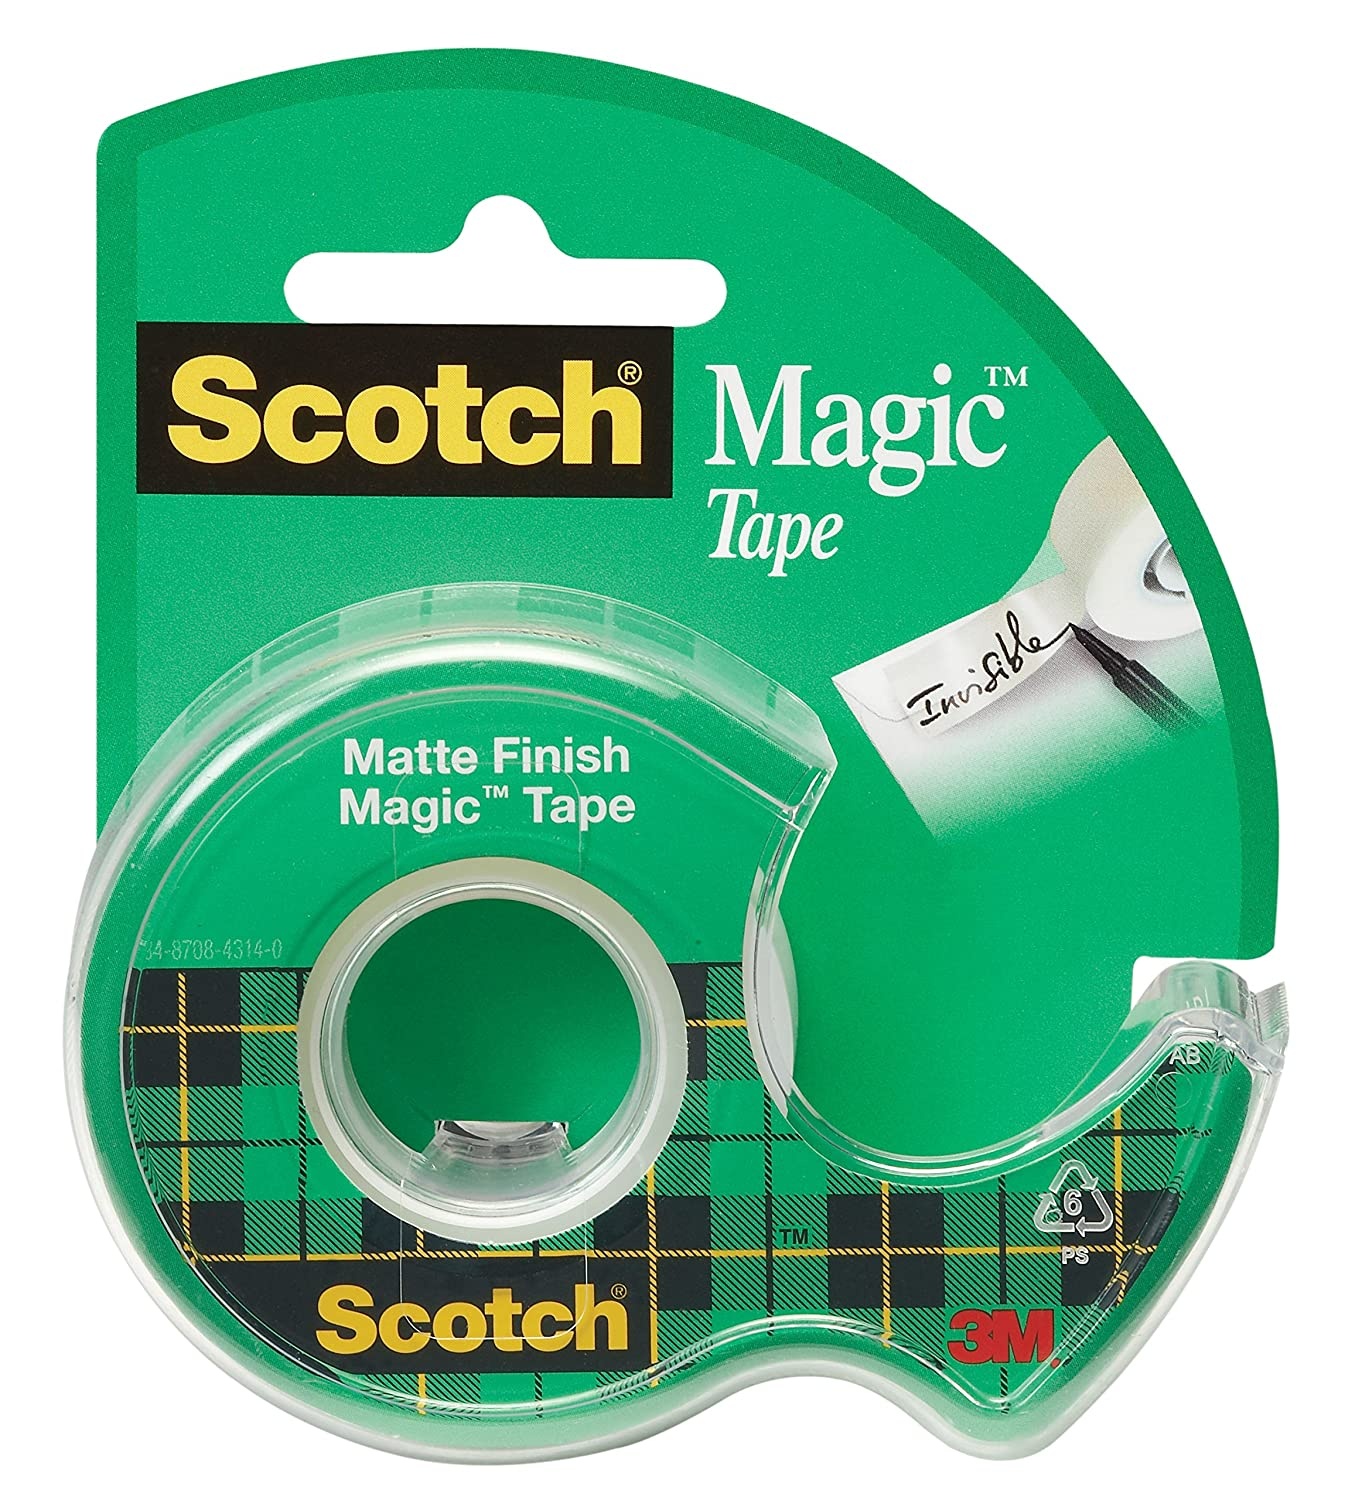 Amazon.com : Scotch Magic Tape, 1/2 x 450 Inches, 12 Rolls (104 ...